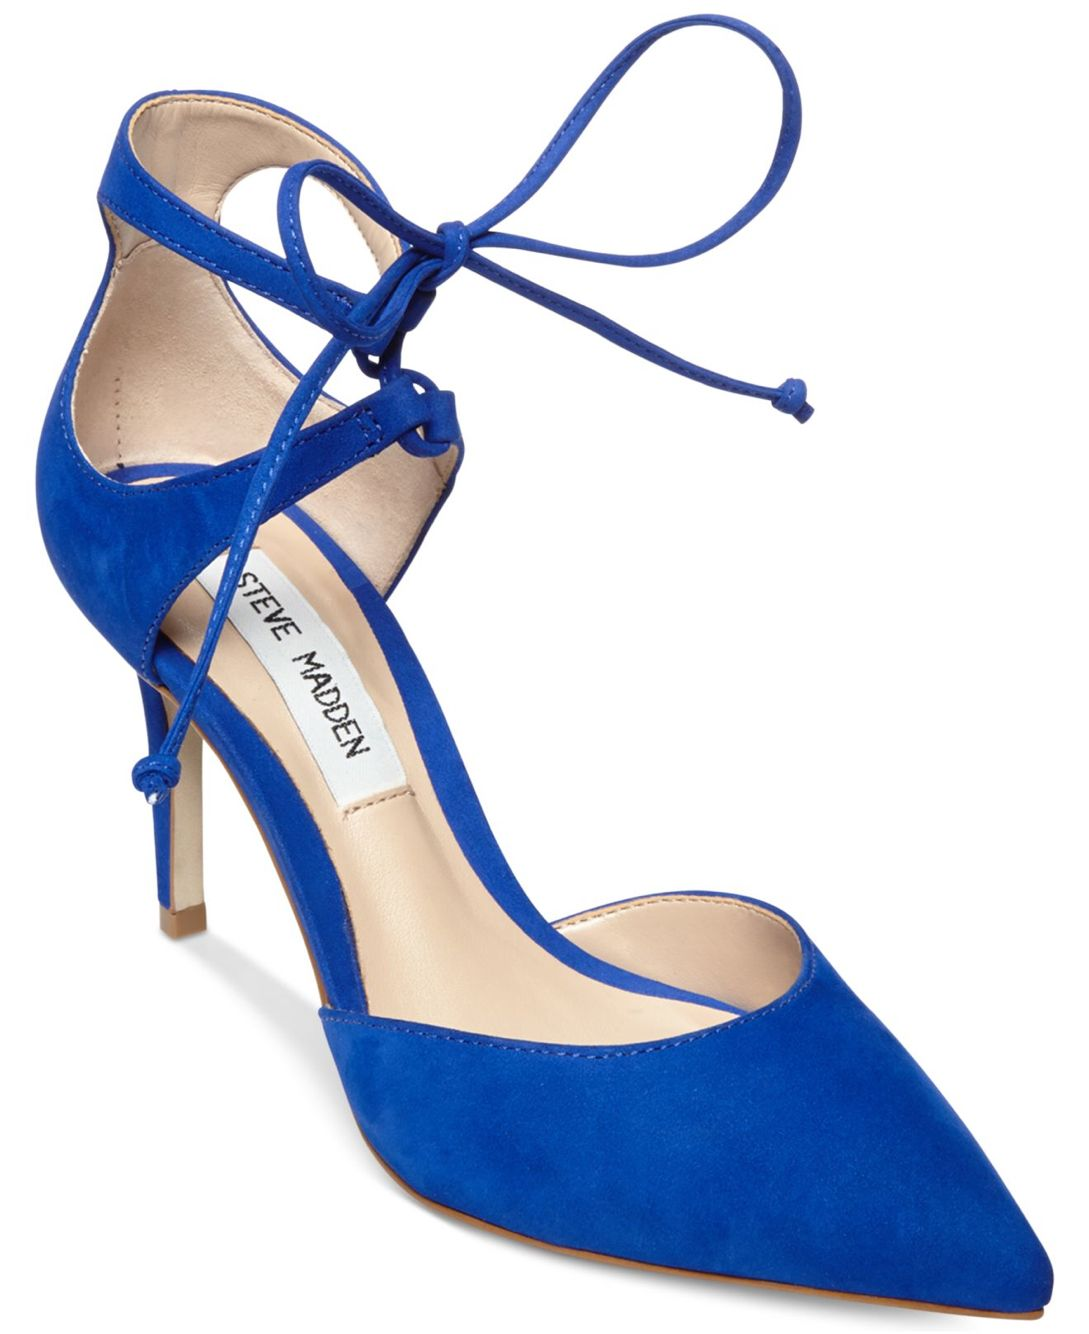 postura Espectáculo fiesta  Ame estos zapatos azules, Steve Madden | Lace up sandals, Pointed toe  shoes, Buy high heels